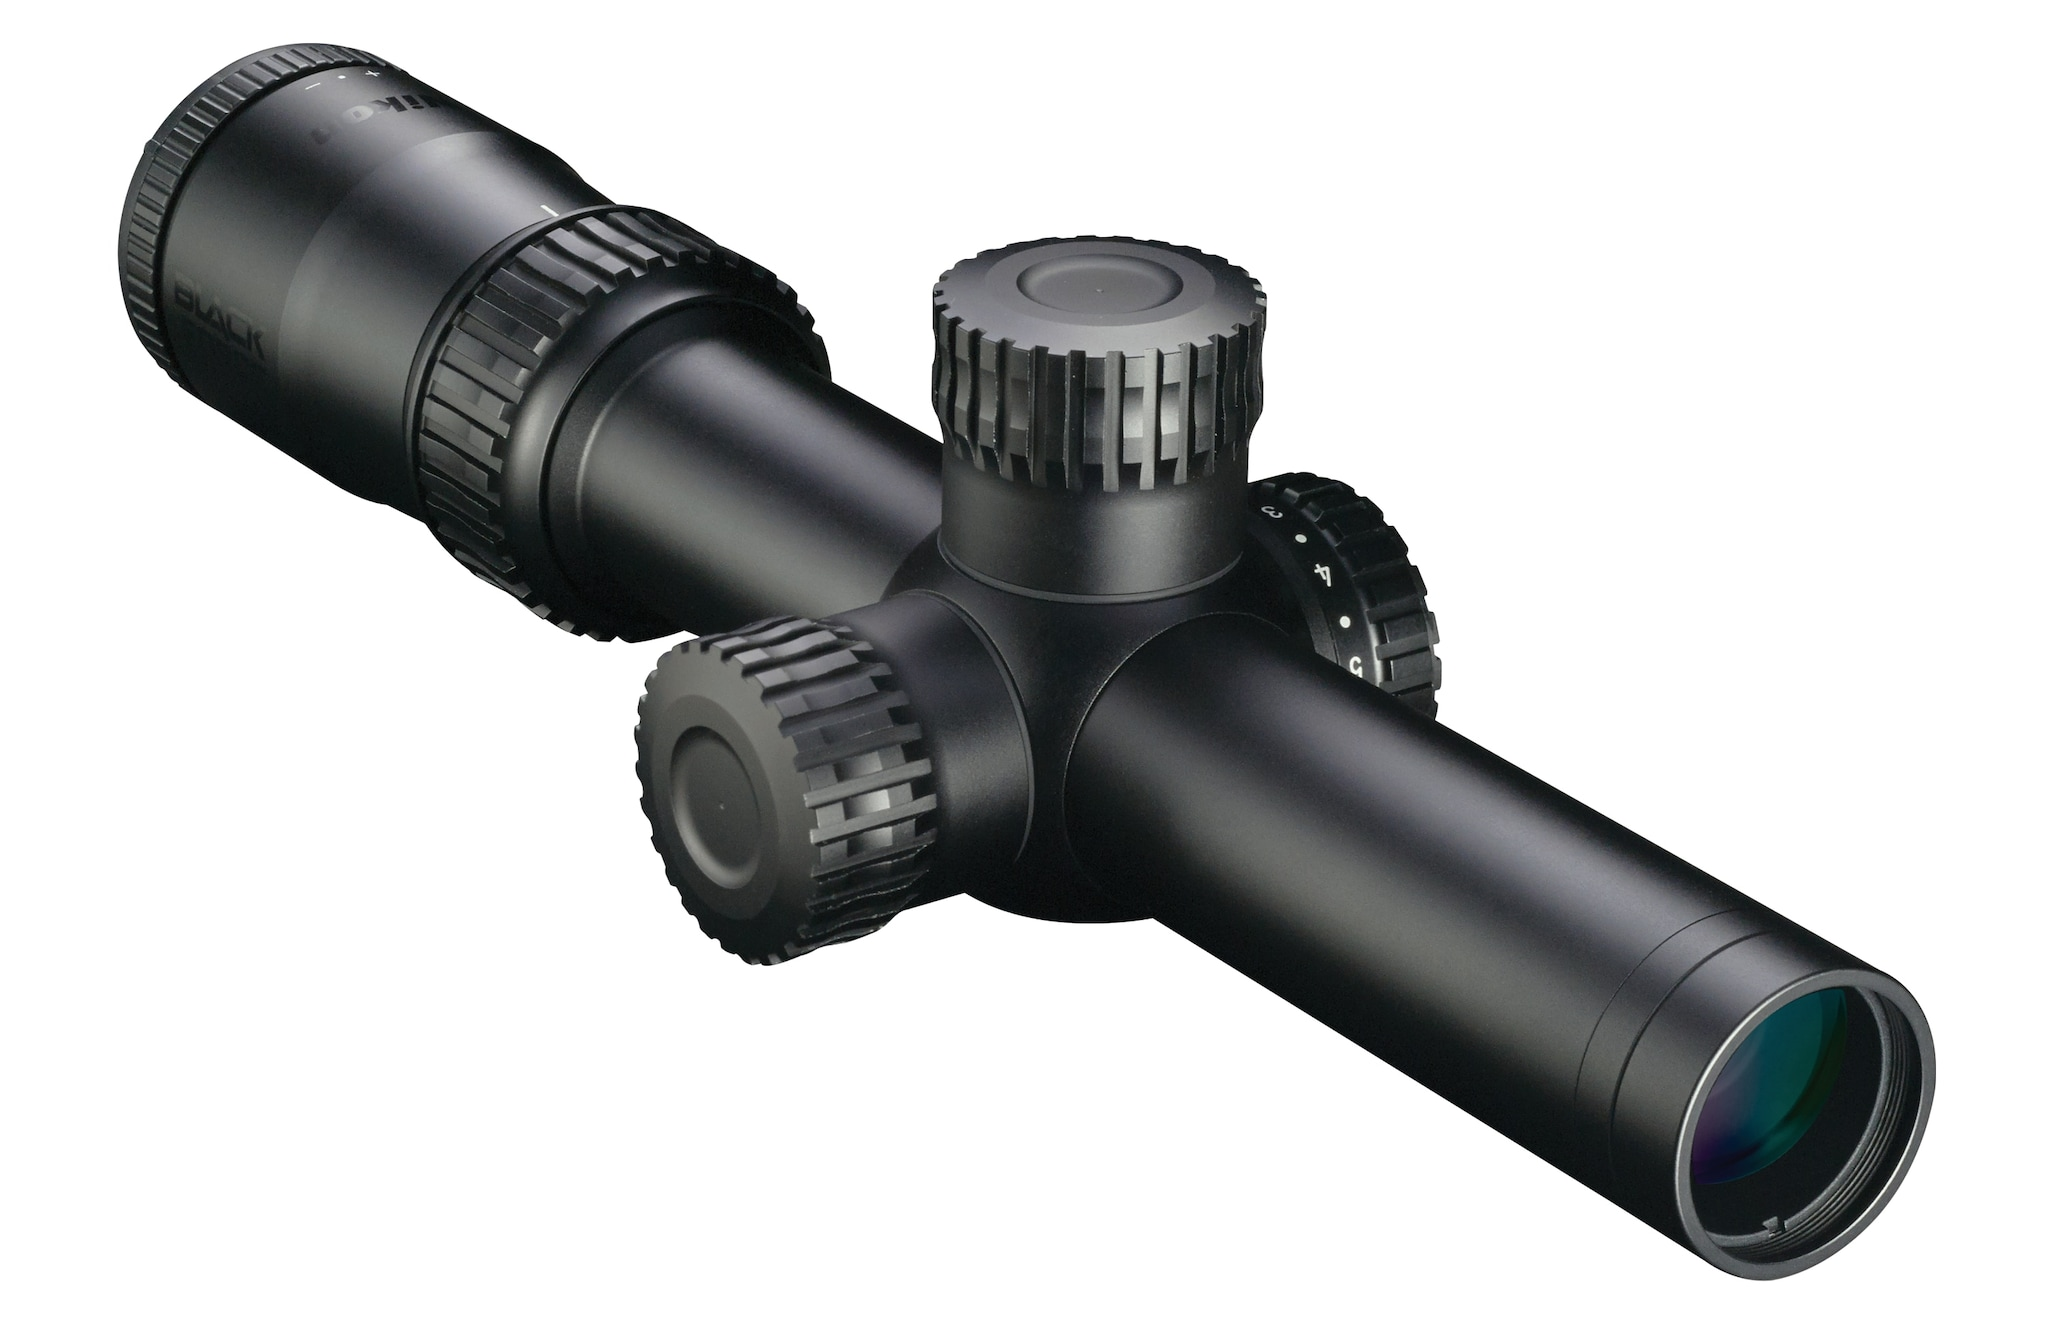 The BLACK FORCE 1000 is a rugged riflescope designed for action AR shooters. (Photo: Nikon)